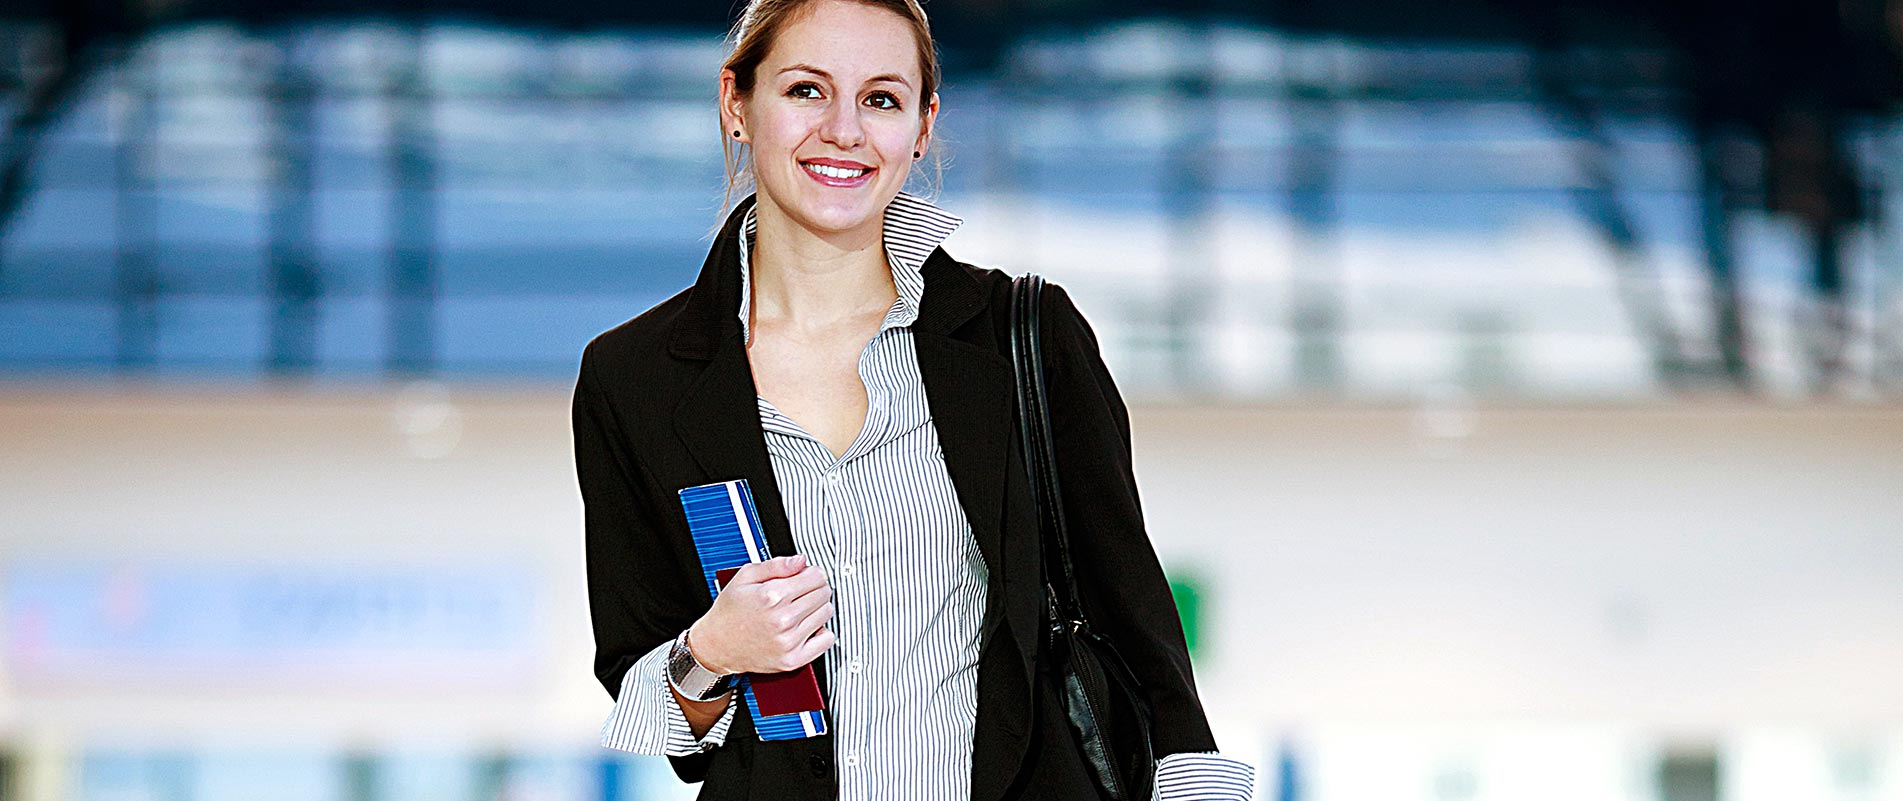 student holding her travel documents in the airport.